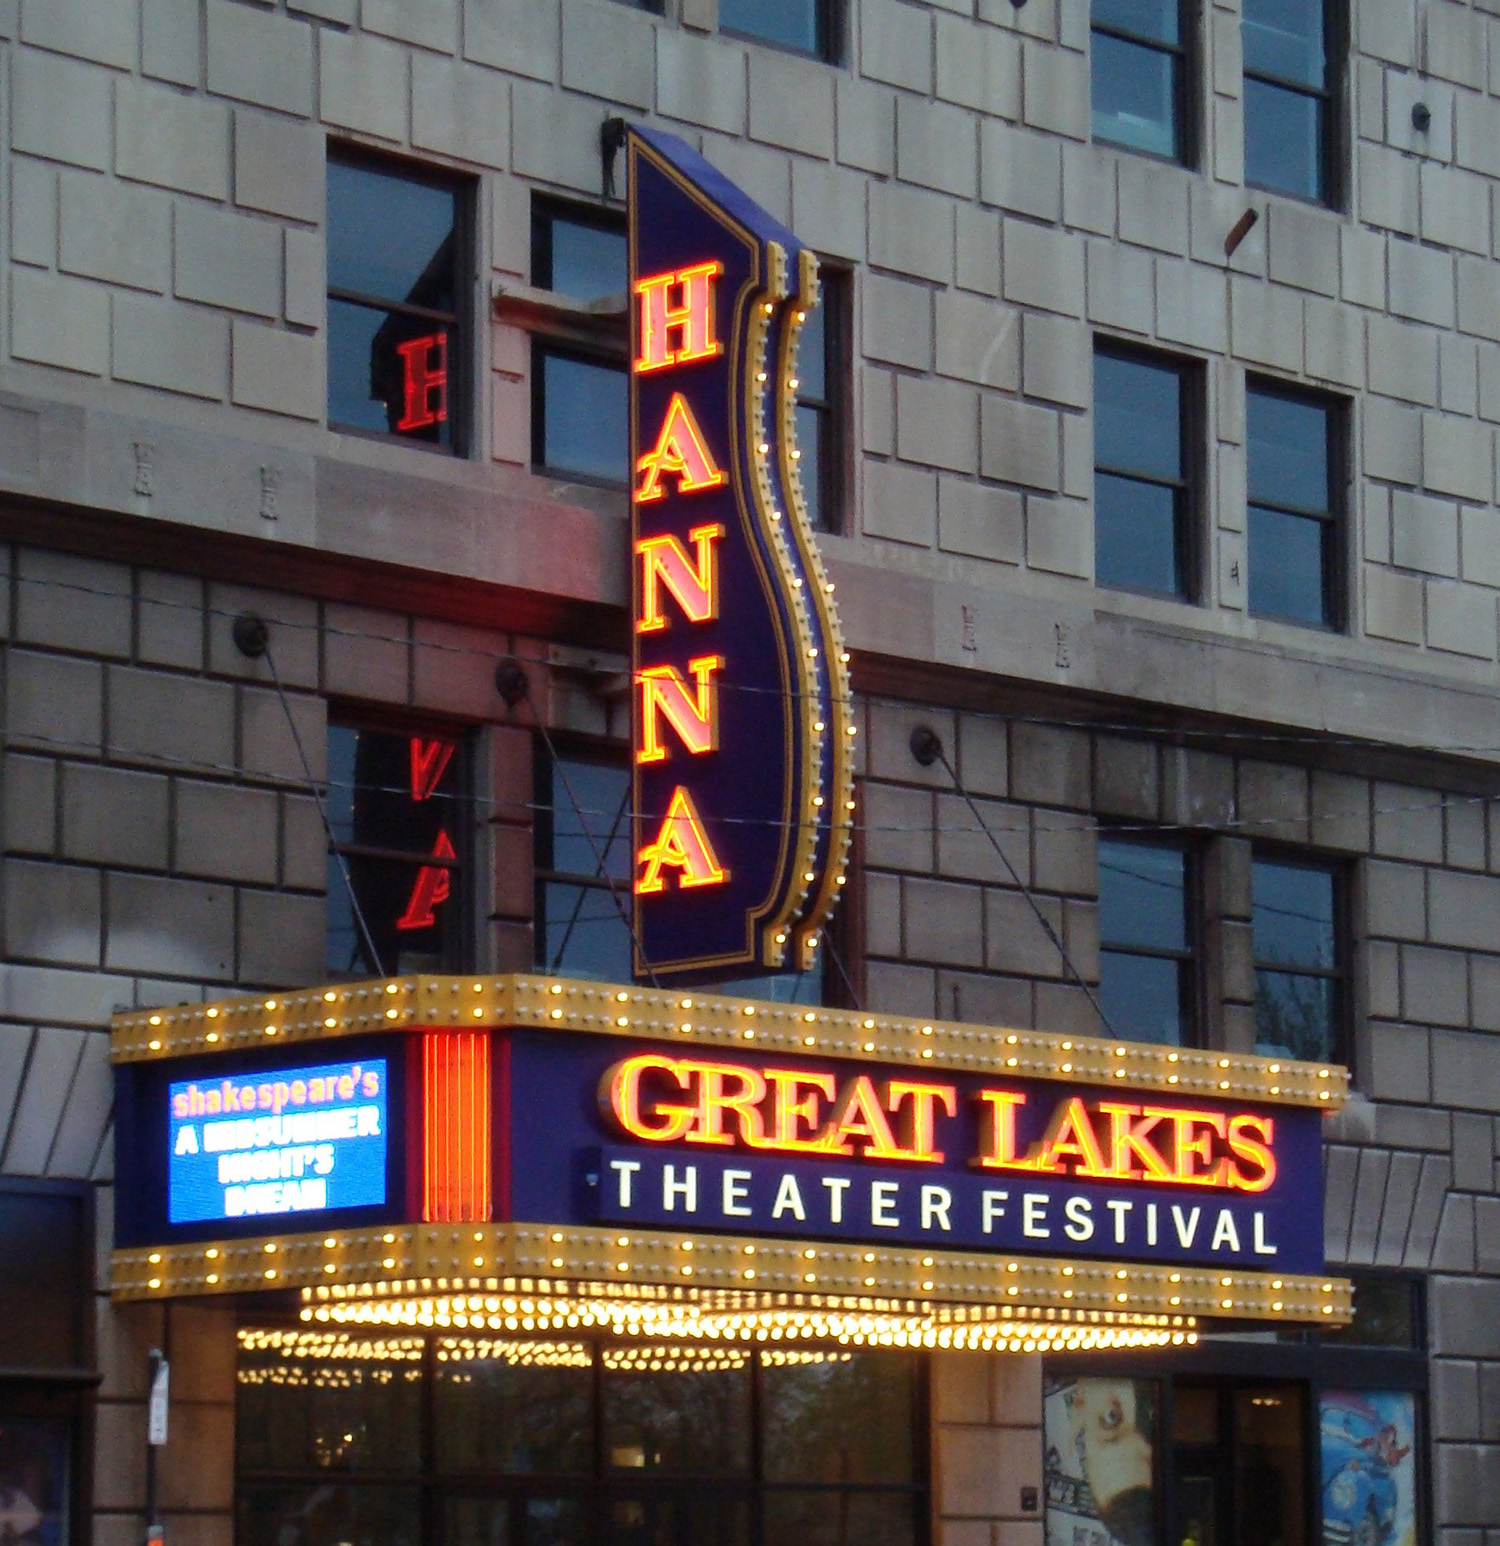 Hanna-Theatre-Front-Building-Signs-web